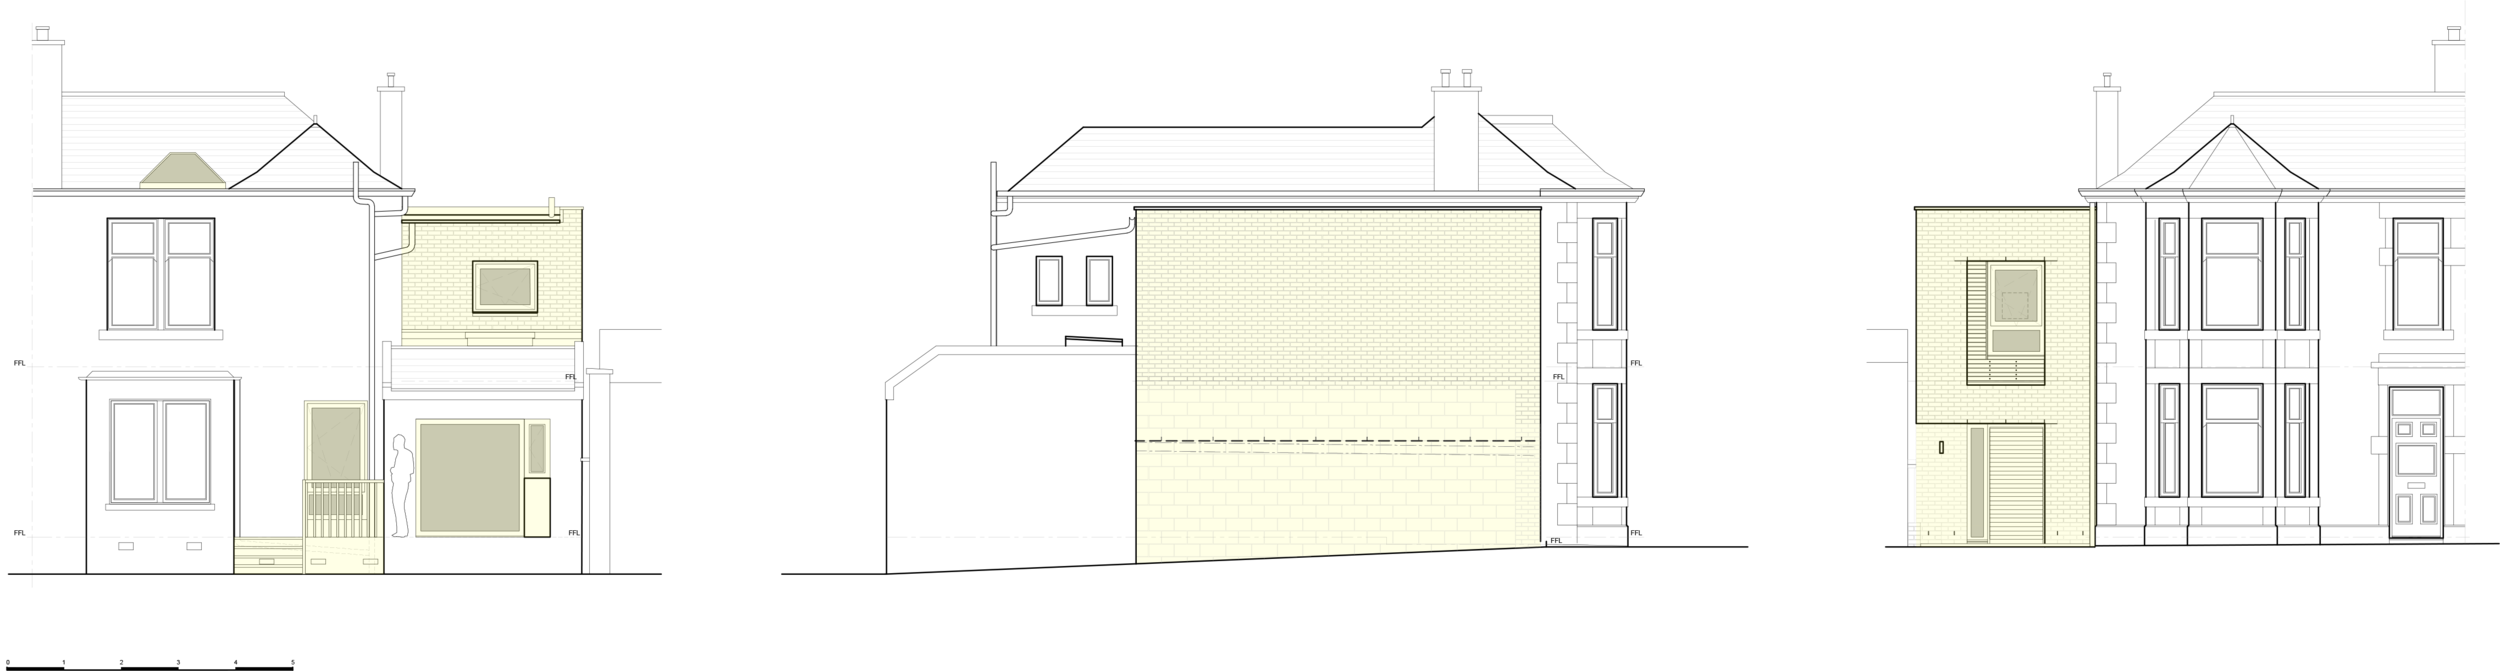 Elevations_Proposed.png